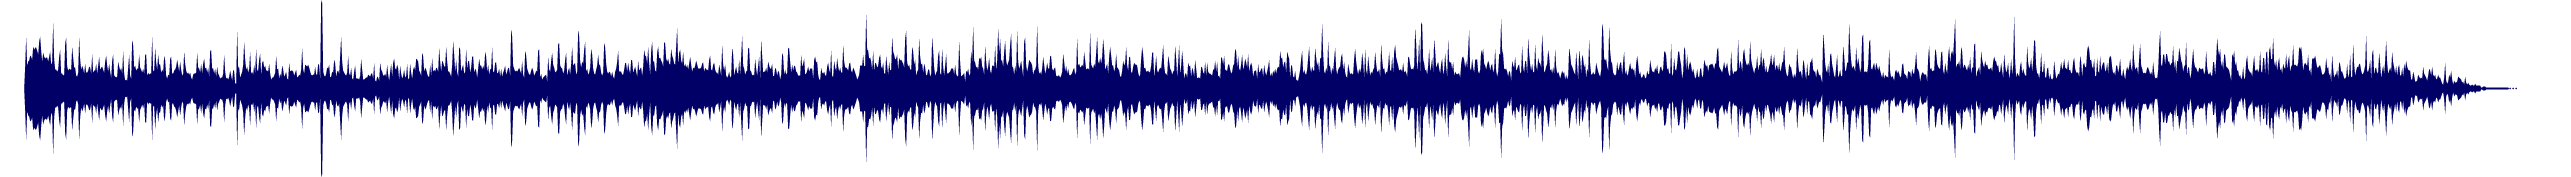 waveform of track #75182